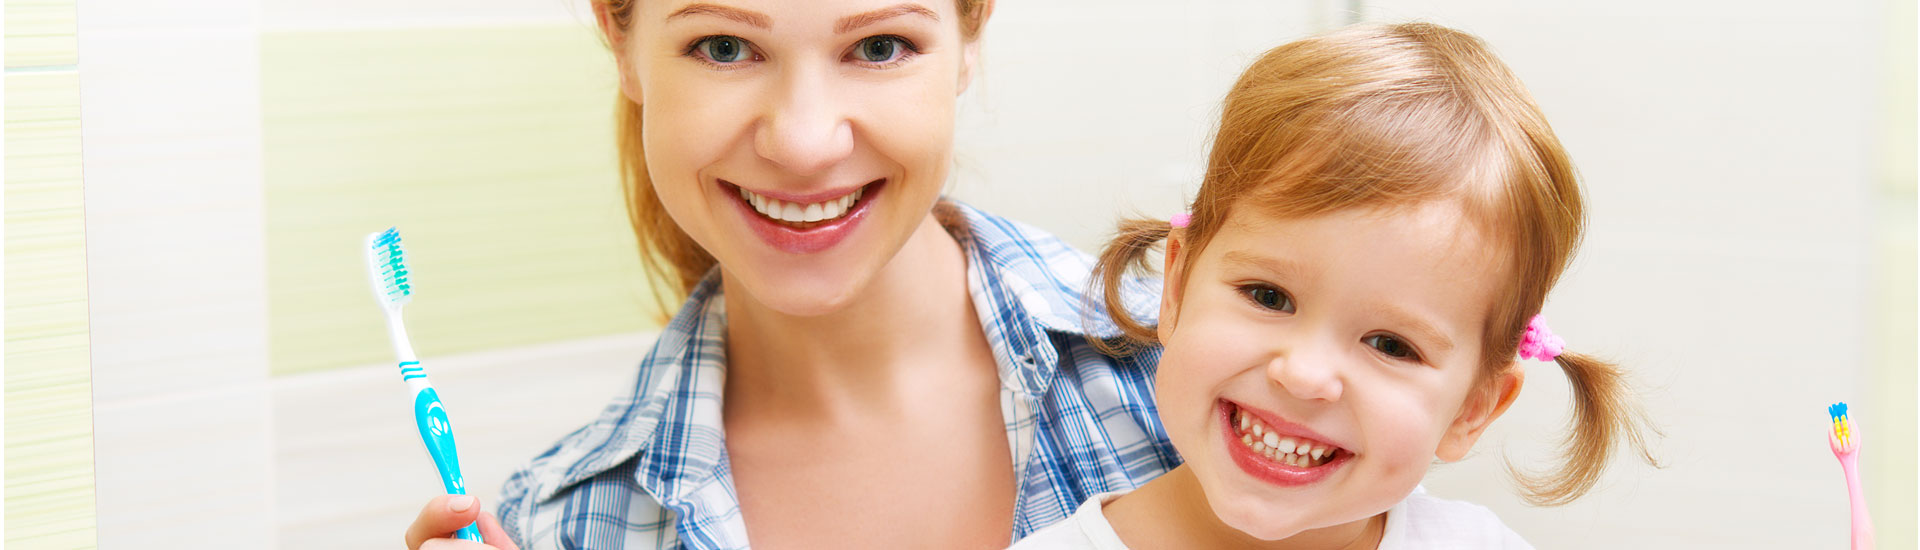 Mother and daughter smiling while holding toothbrushes